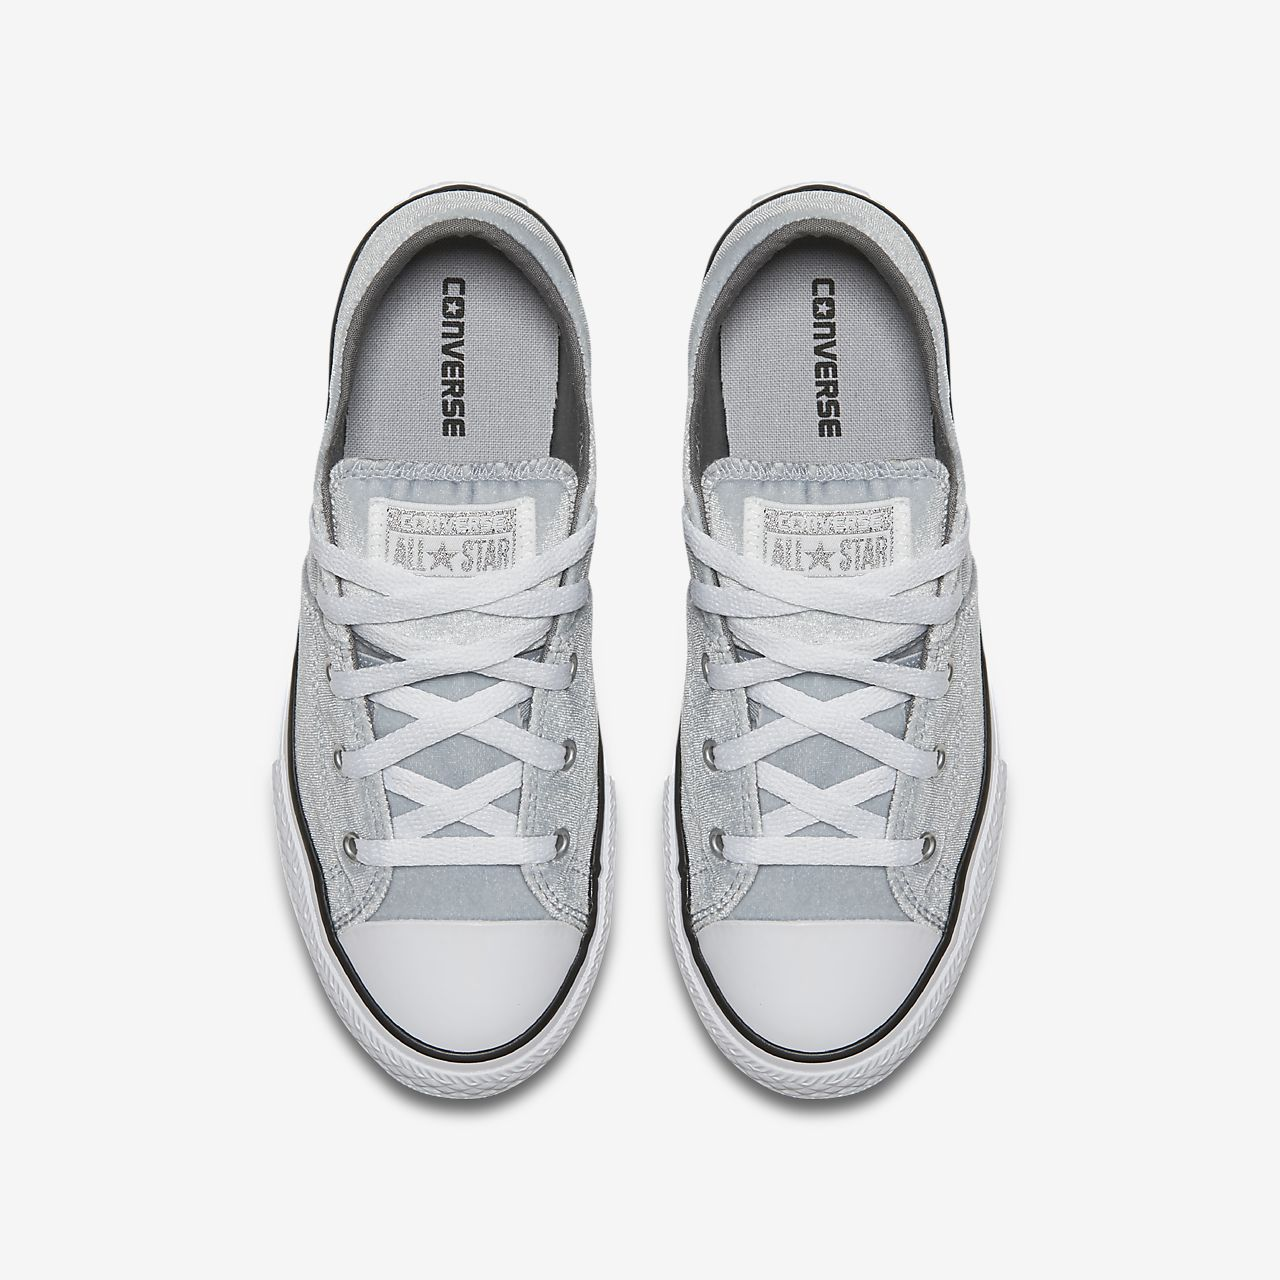 converse chuck taylor 2 kids silver